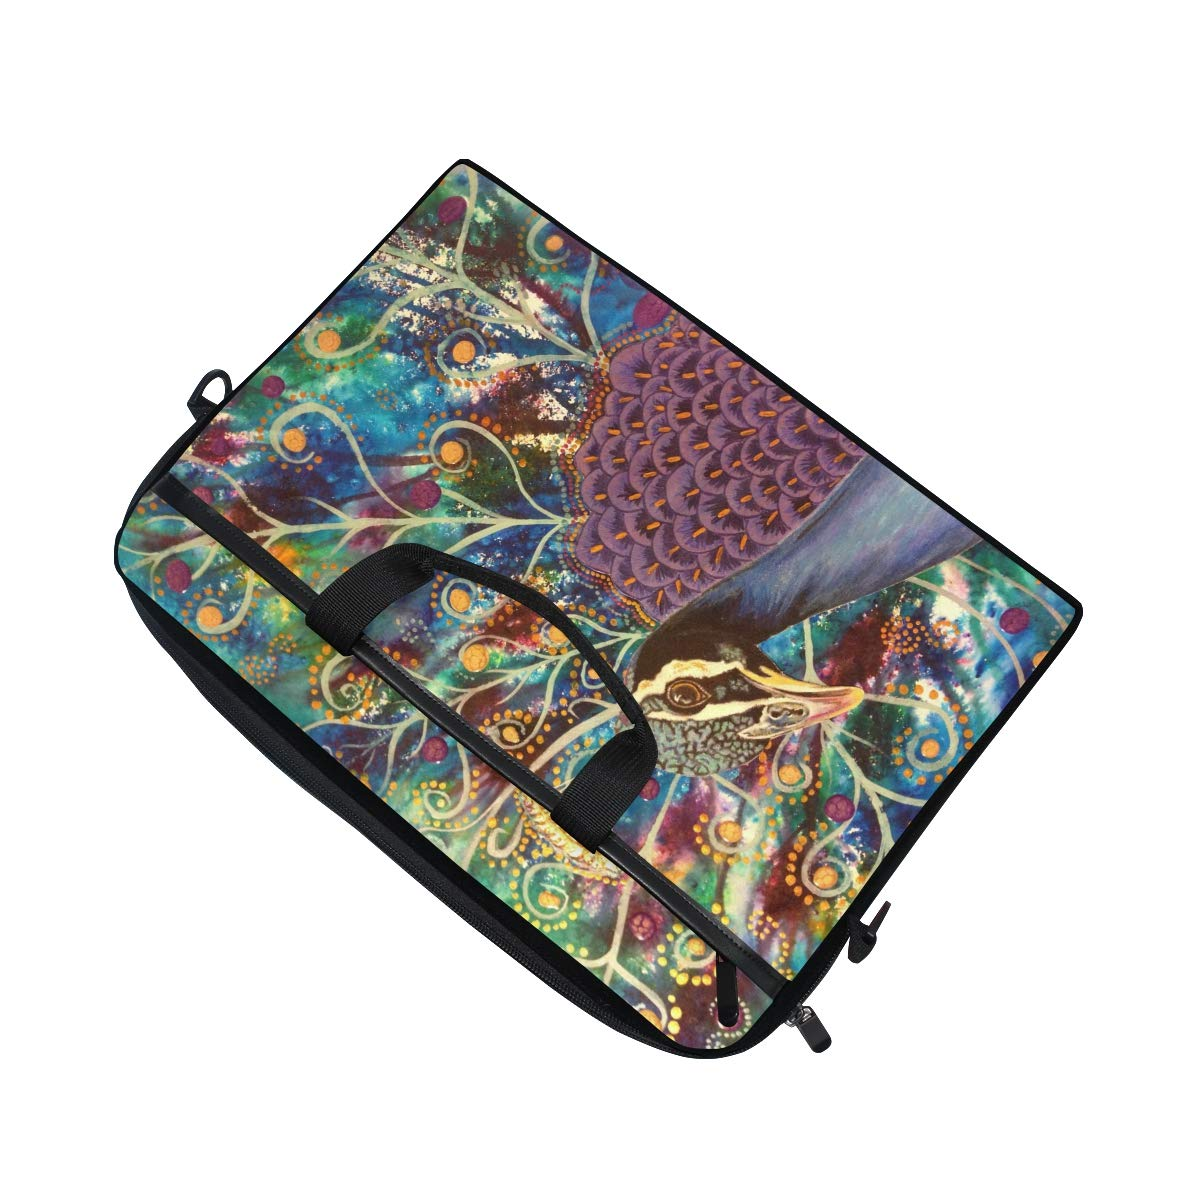 Handbags Shoulder Bags Briefcases Suitable for 15 Inch Computers Peacockmens and Womens Computer Bags